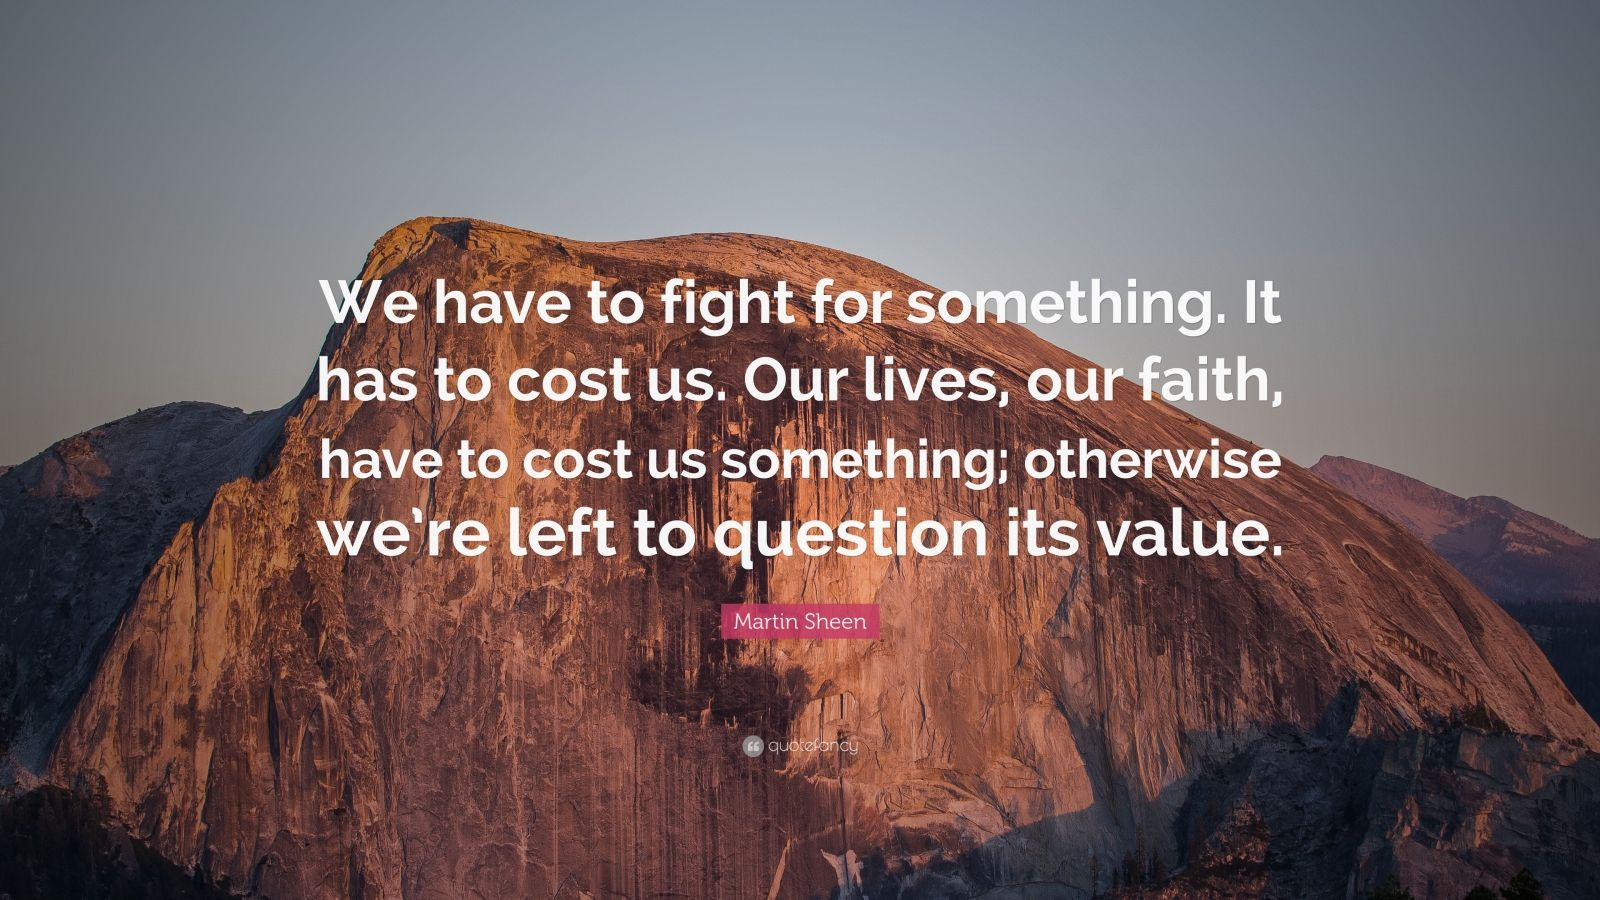 """Martin Sheen Quote: """"We have to fight for something. It has to cost us. Our lives, our faith, have to cost us something; otherwise we're left to question its value."""""""